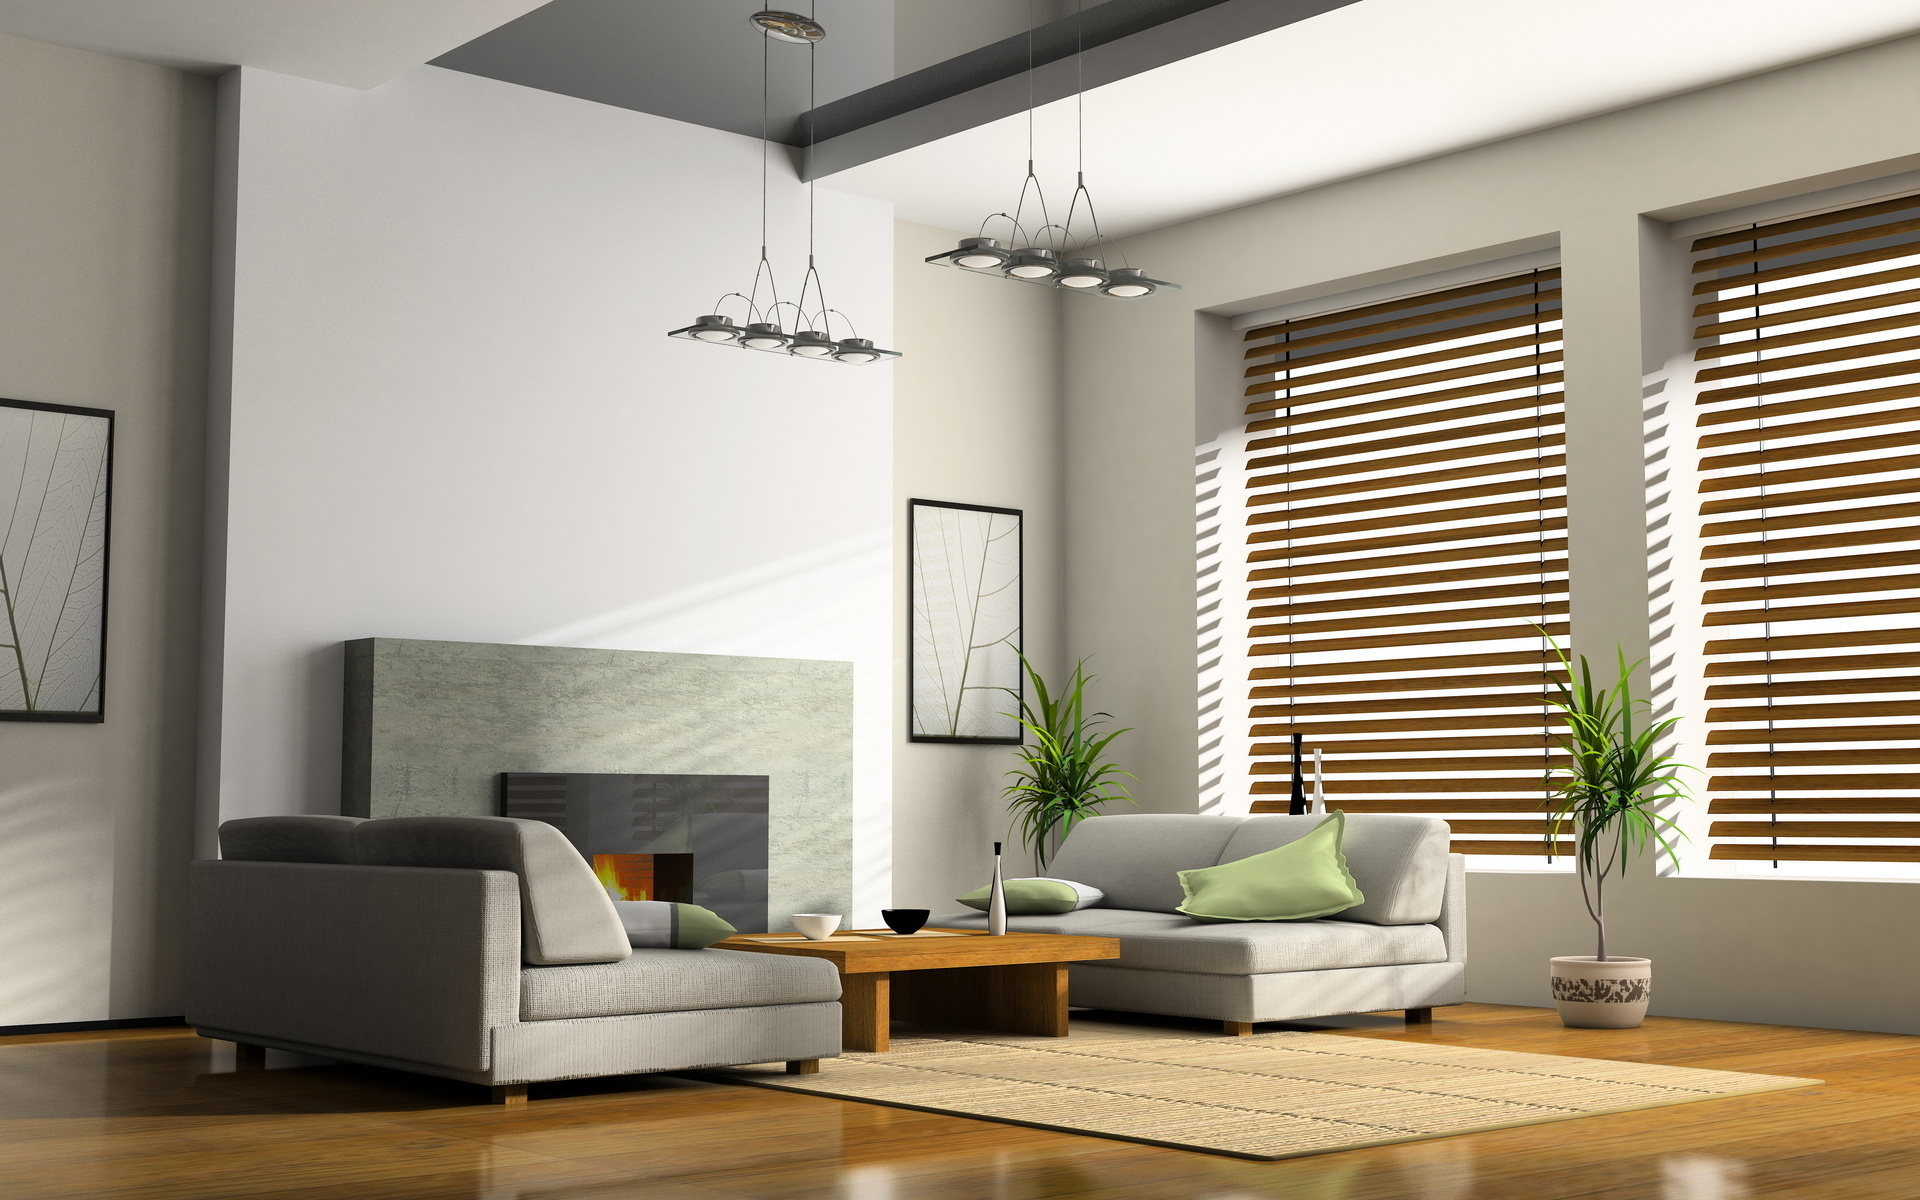 3d interior design desktop wallpaper 60899 1920x1200 px for 3d interior